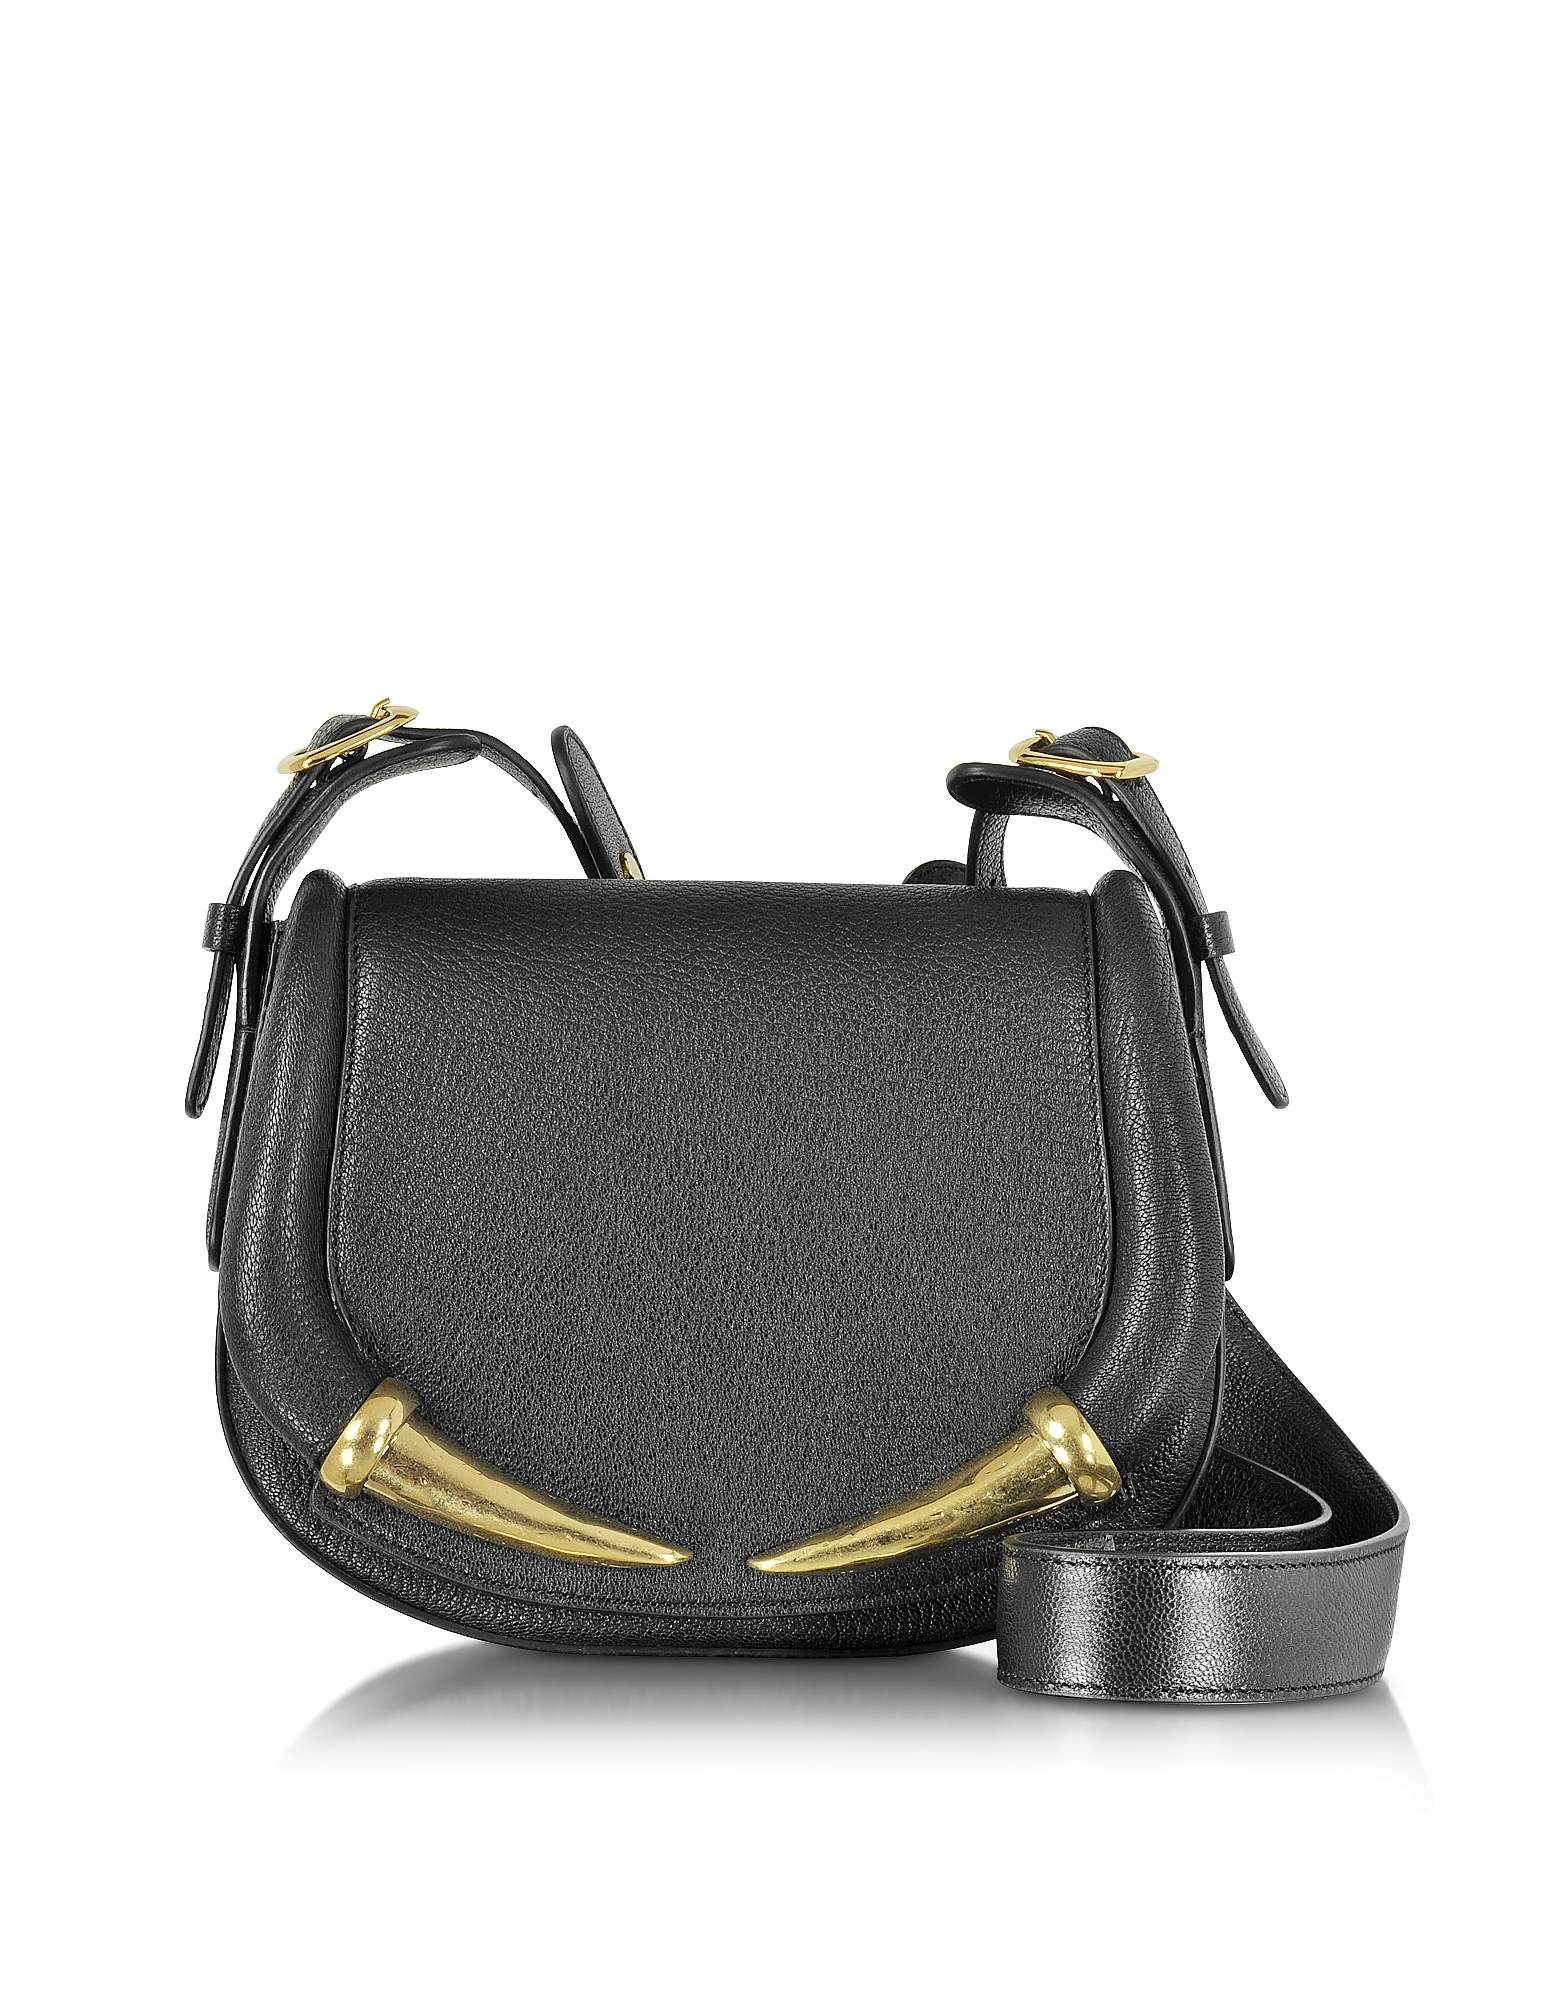 Roberto Cavalli Handbags, Kripton Black Leather Small Shoulder Bag